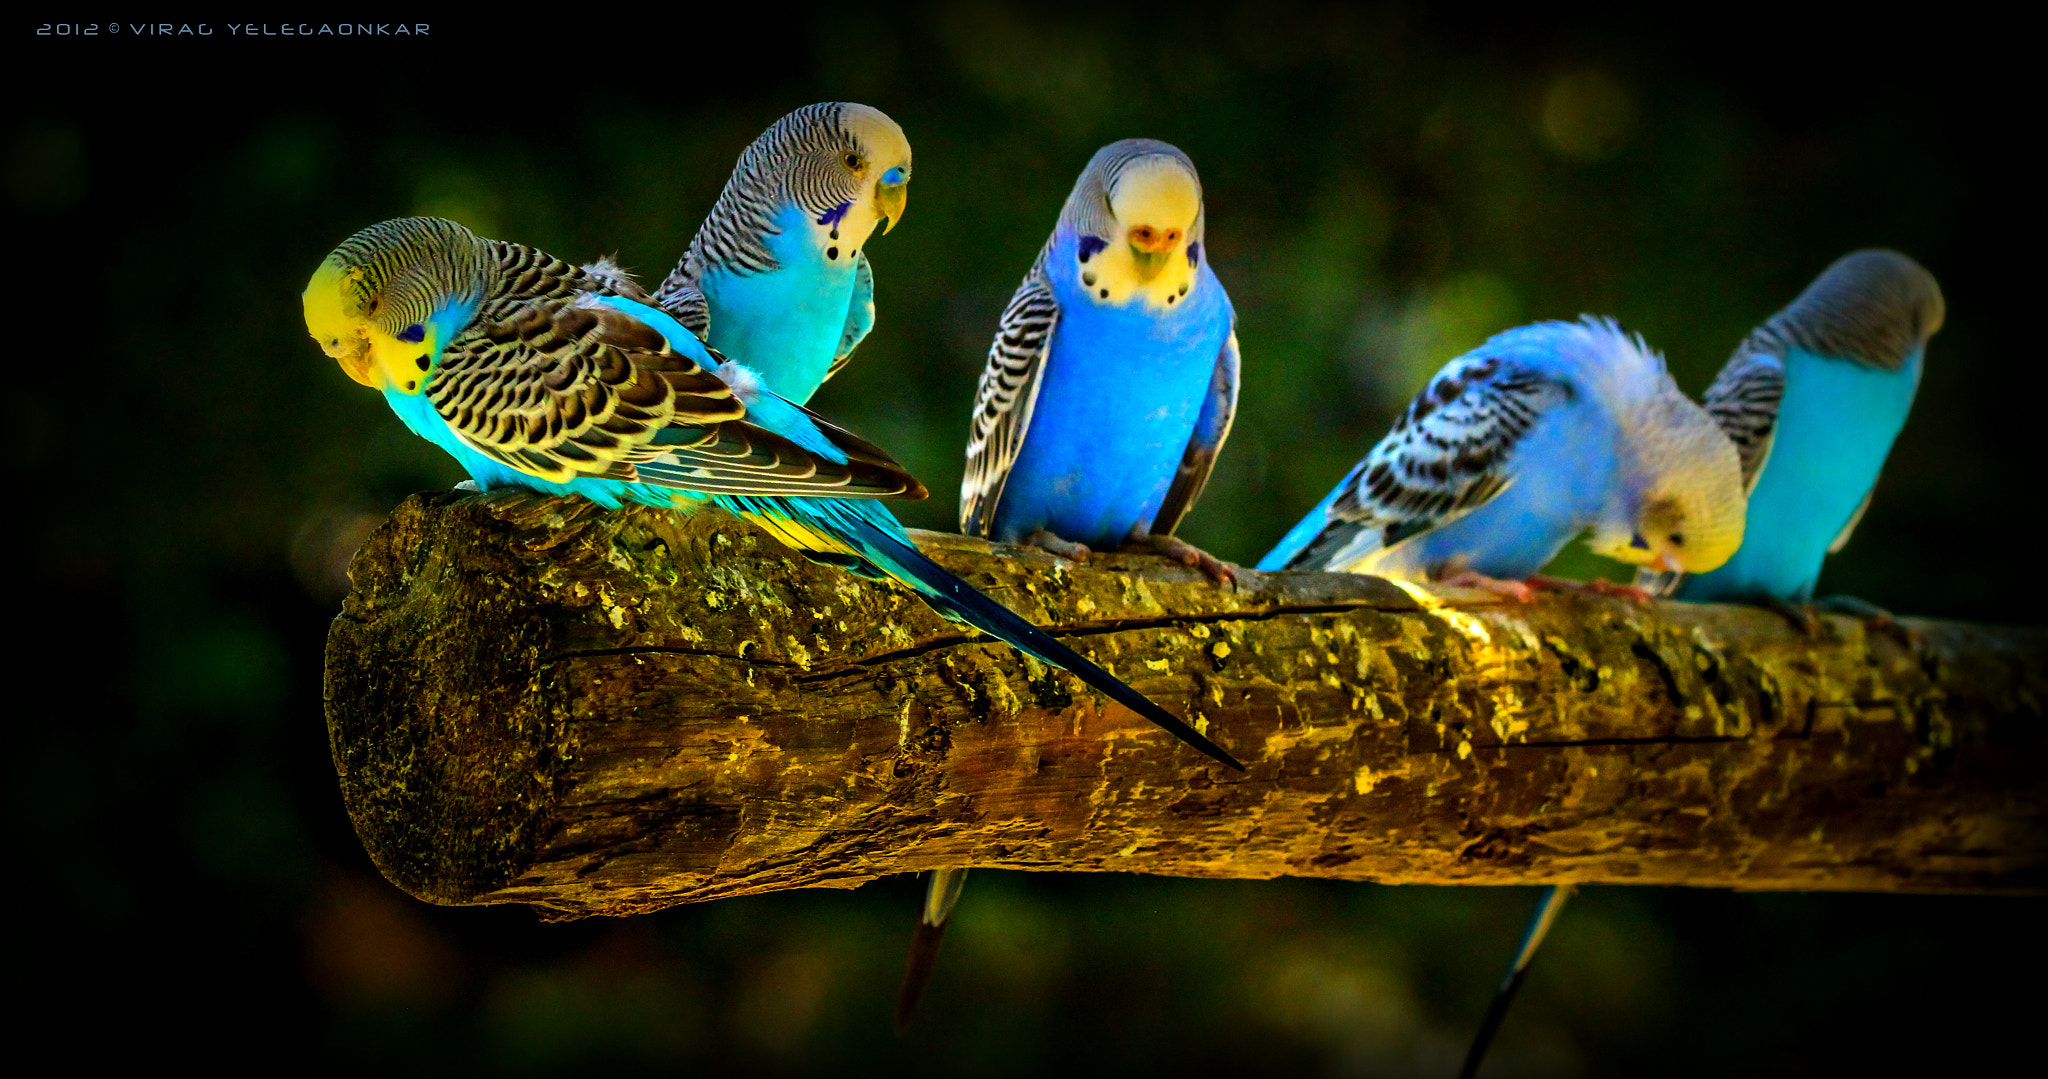 Photograph colorful cuties... by Virag Yelegaonkar on 500px